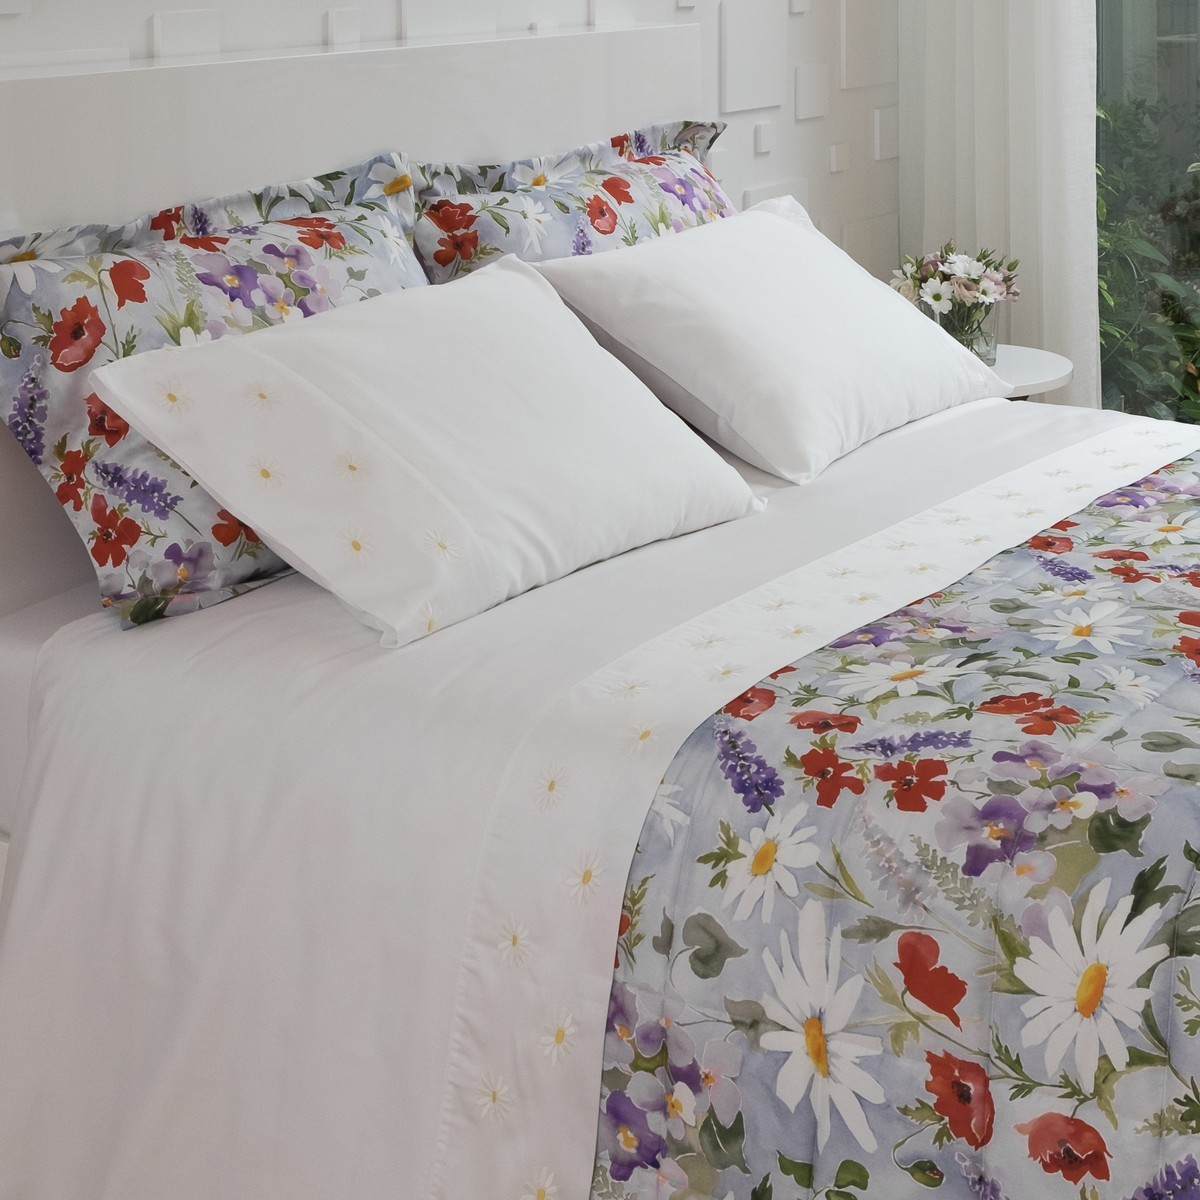 Sheet Set, Daisy